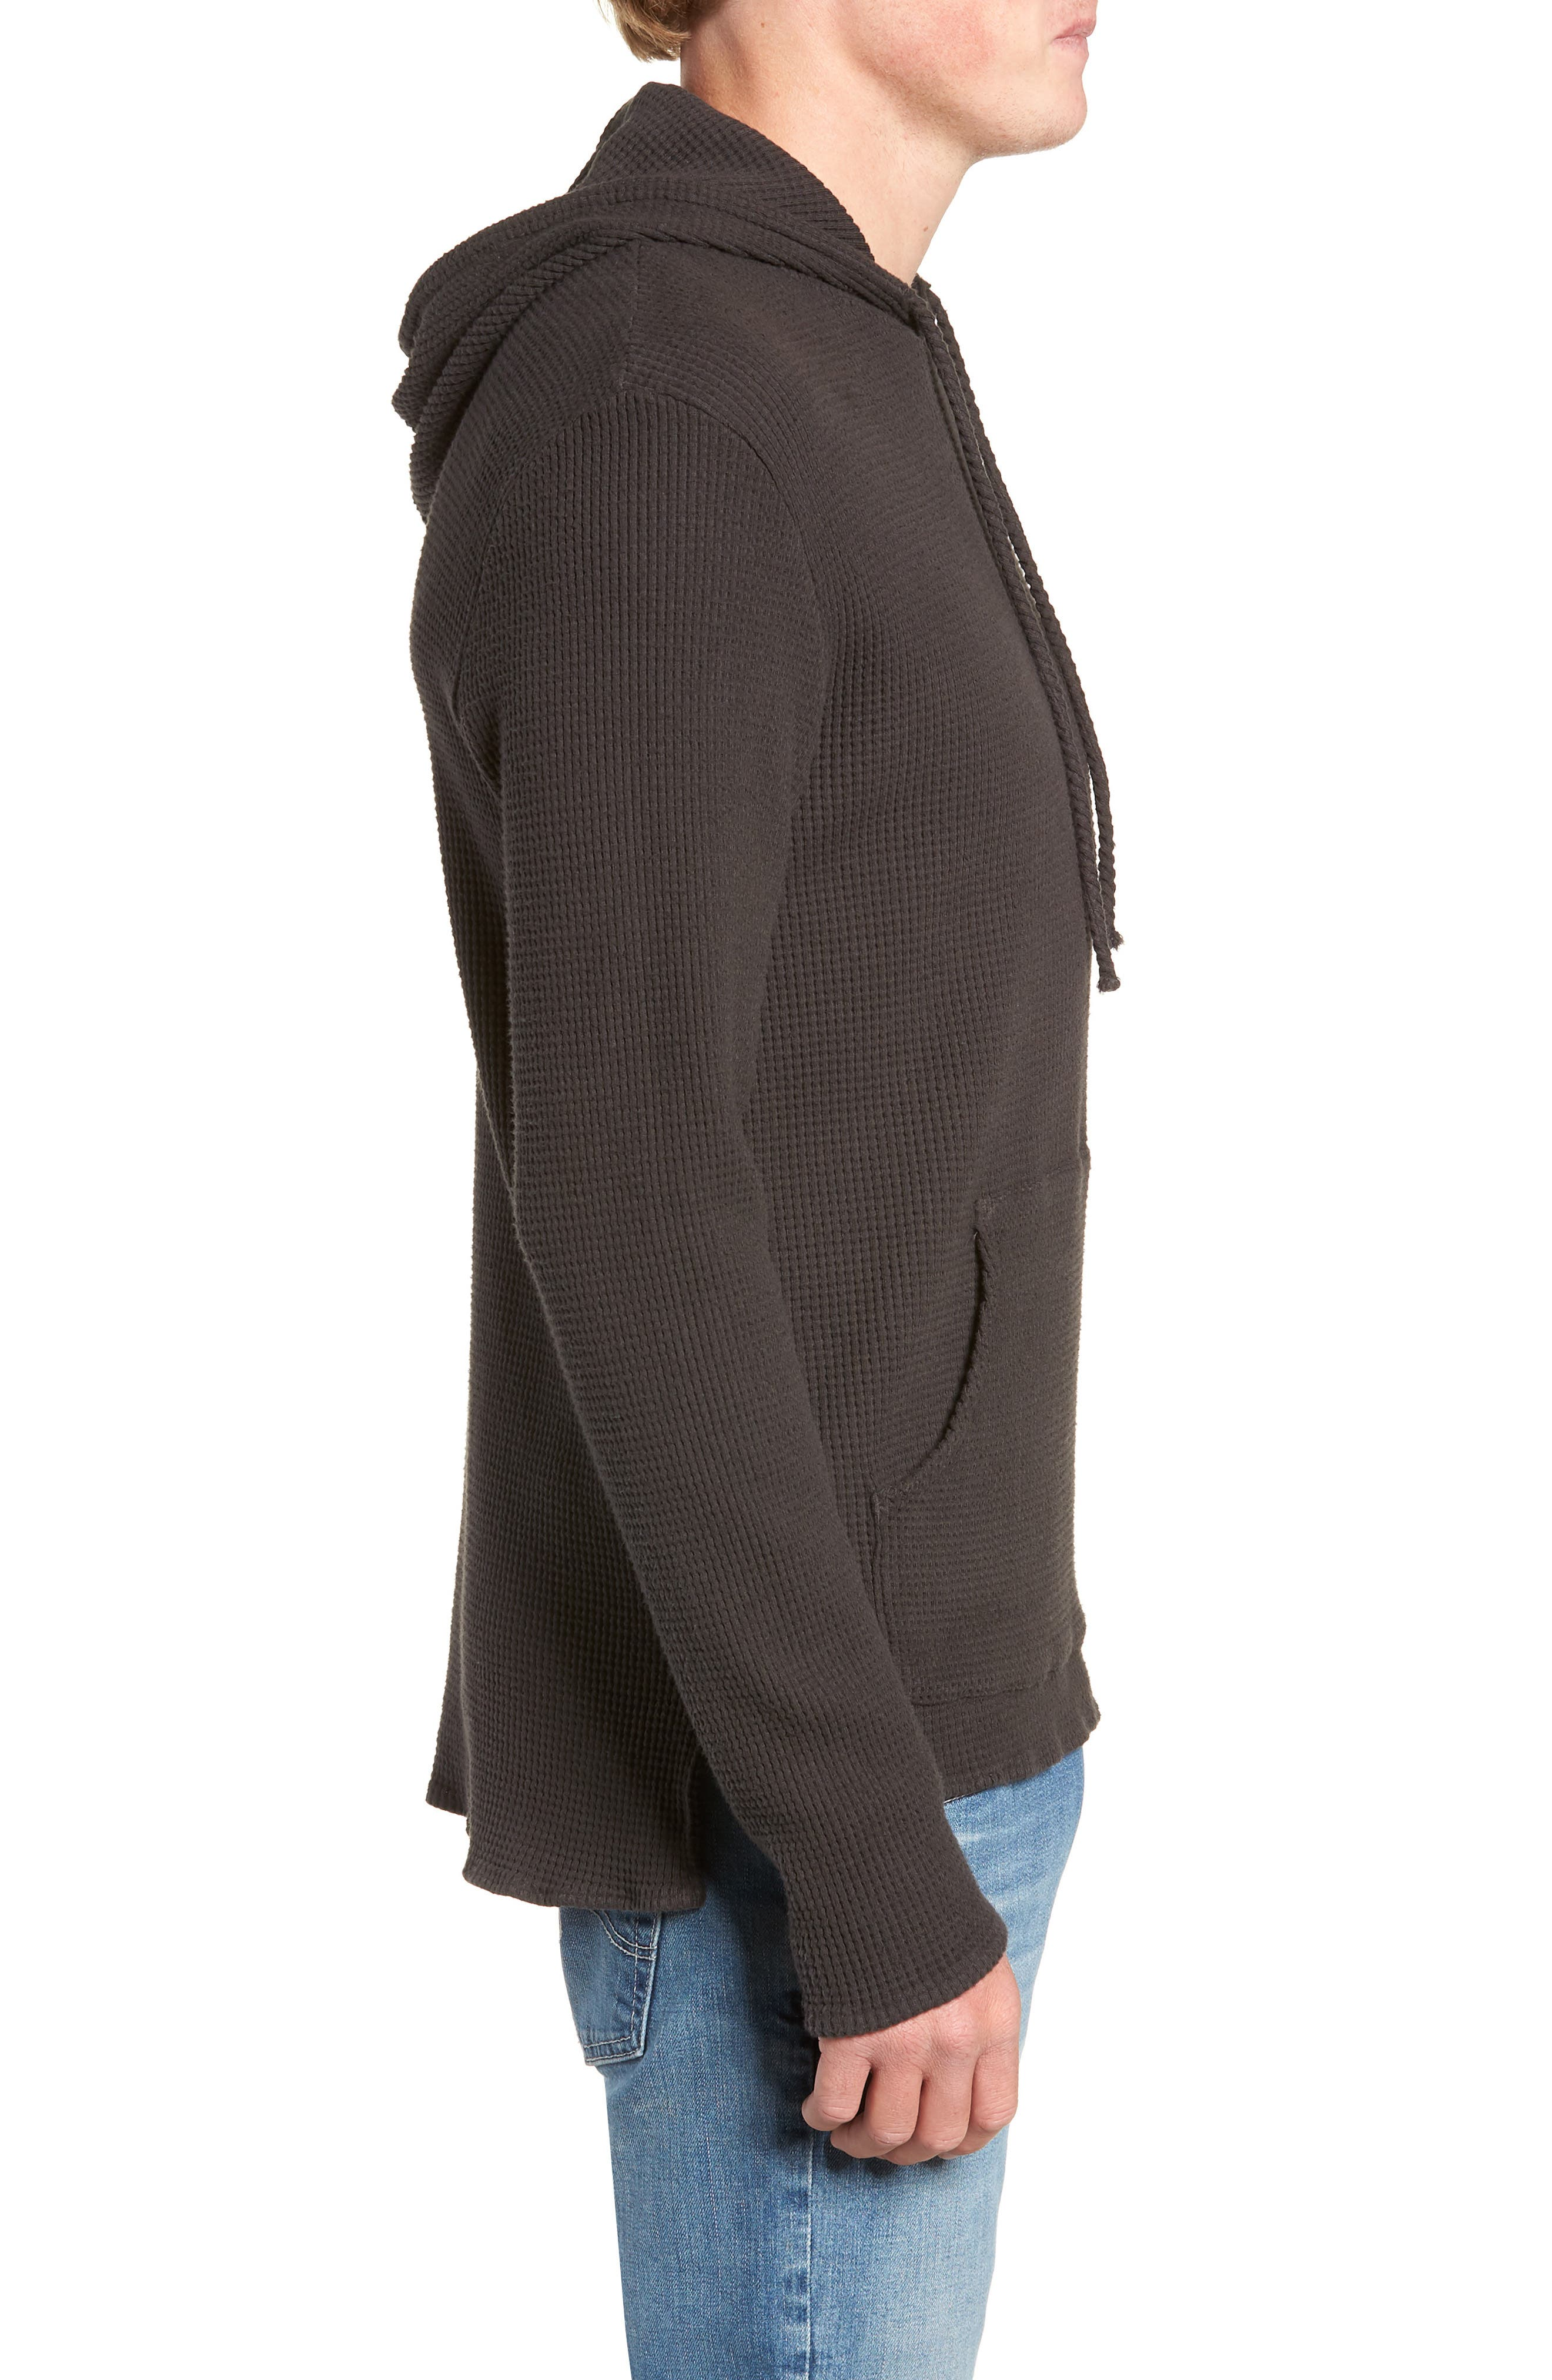 Thermal Knit Pullover Hoodie,                             Alternate thumbnail 3, color,                             020